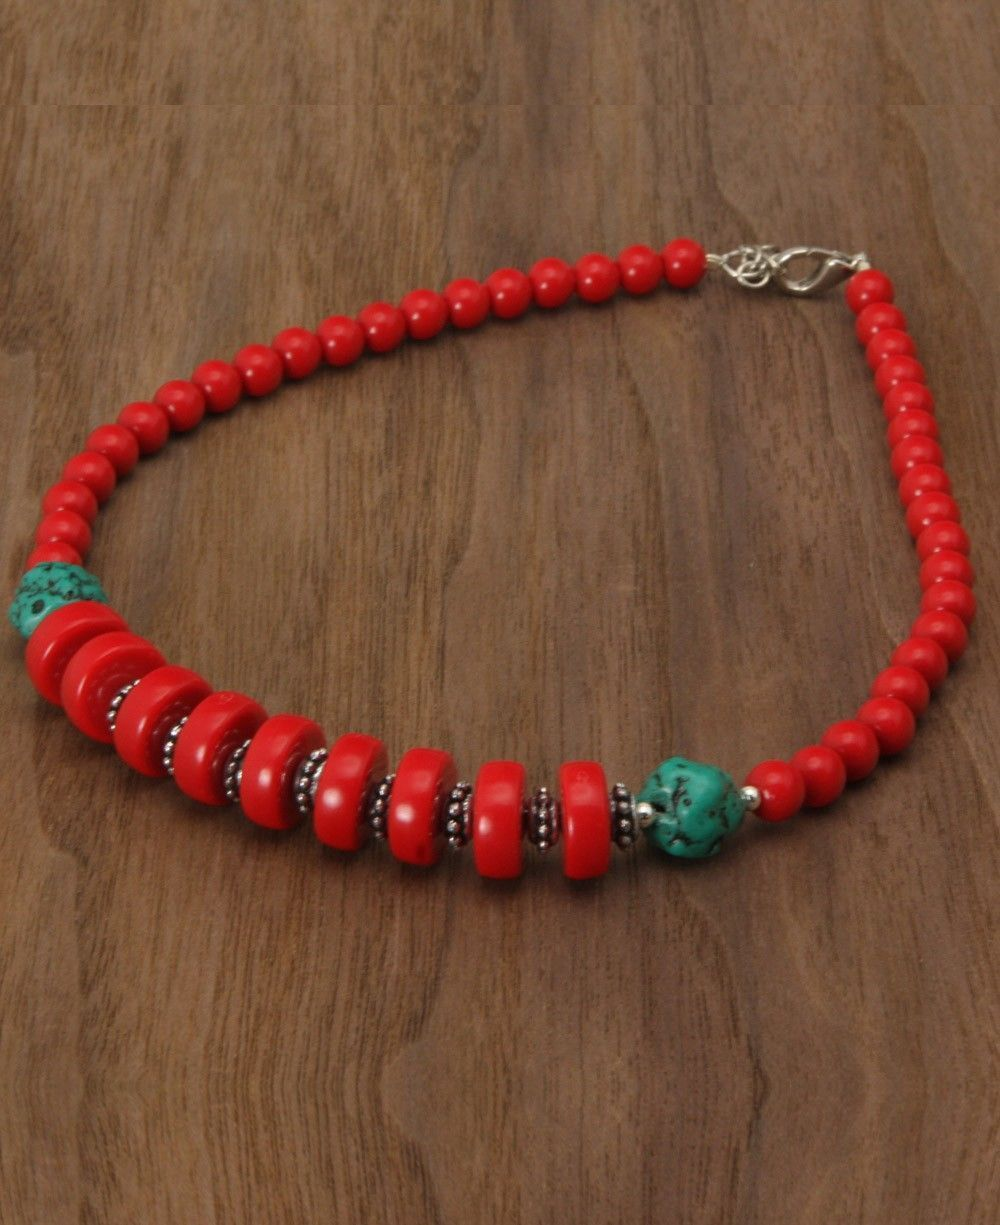 How To Take Pictures Of Jewelry For Etsy Jewelleryphotography Jewelry Red Beaded Necklaces Beaded Bracelets